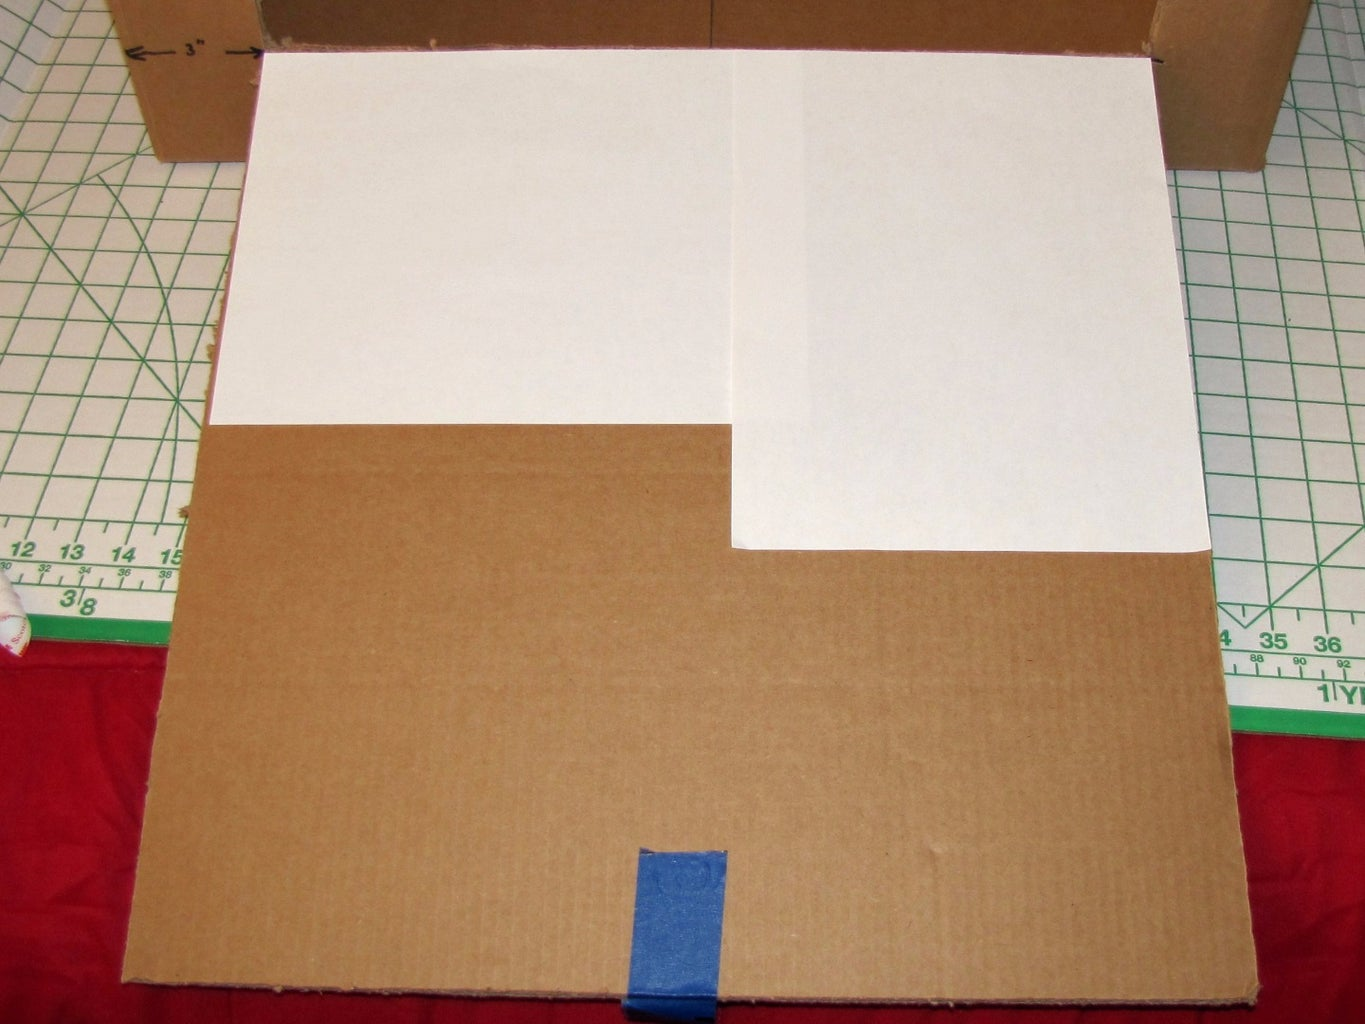 Cover the Interior Surfaces of the Box With Sheets of White Copier Paper